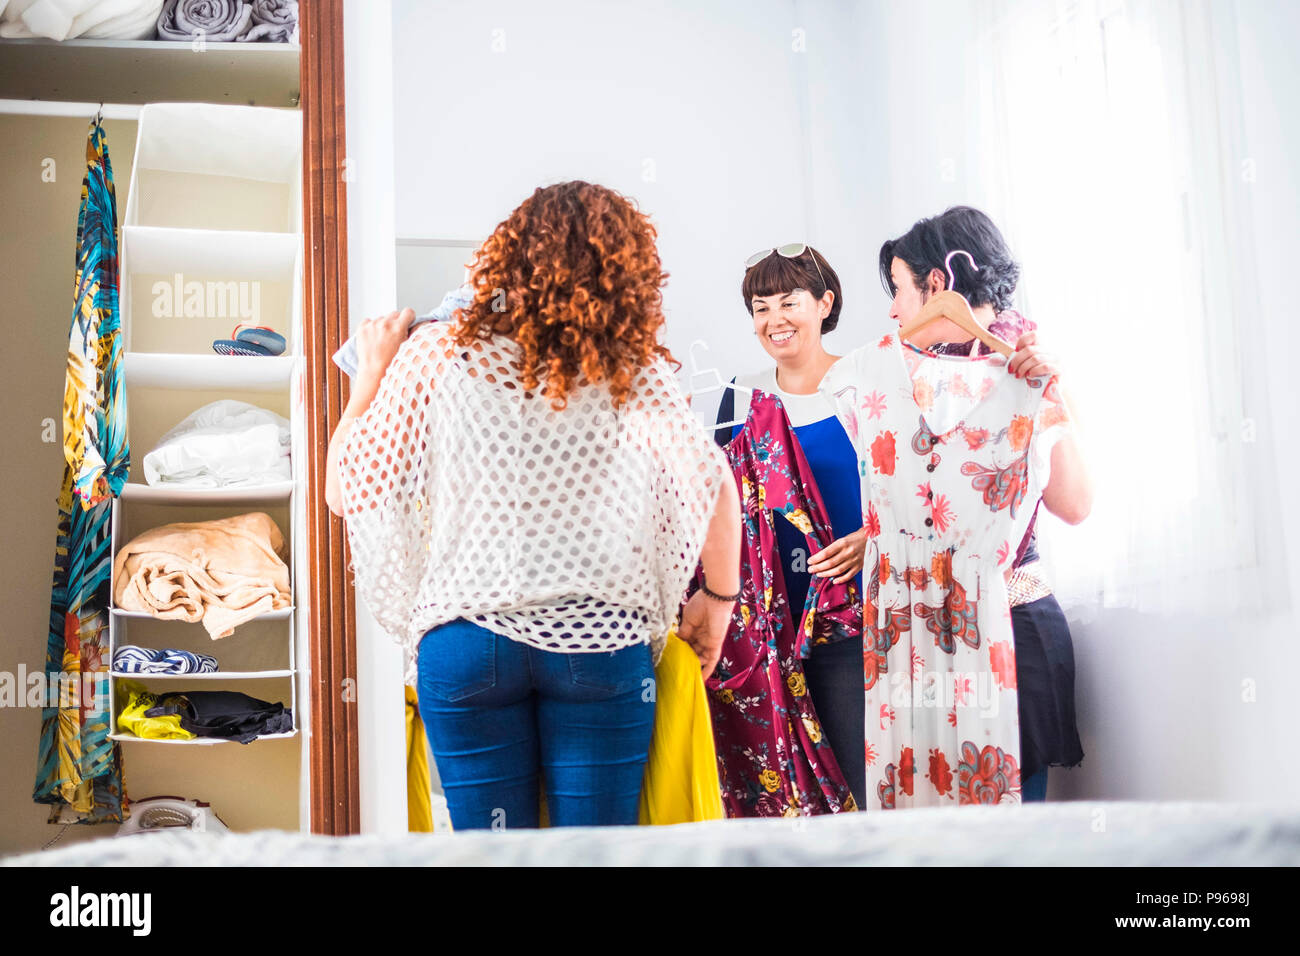 group of three caucasian young women at home choosing the dress ready for the night events and celebrate together in friendship. smiles and nice leisu - Stock Image